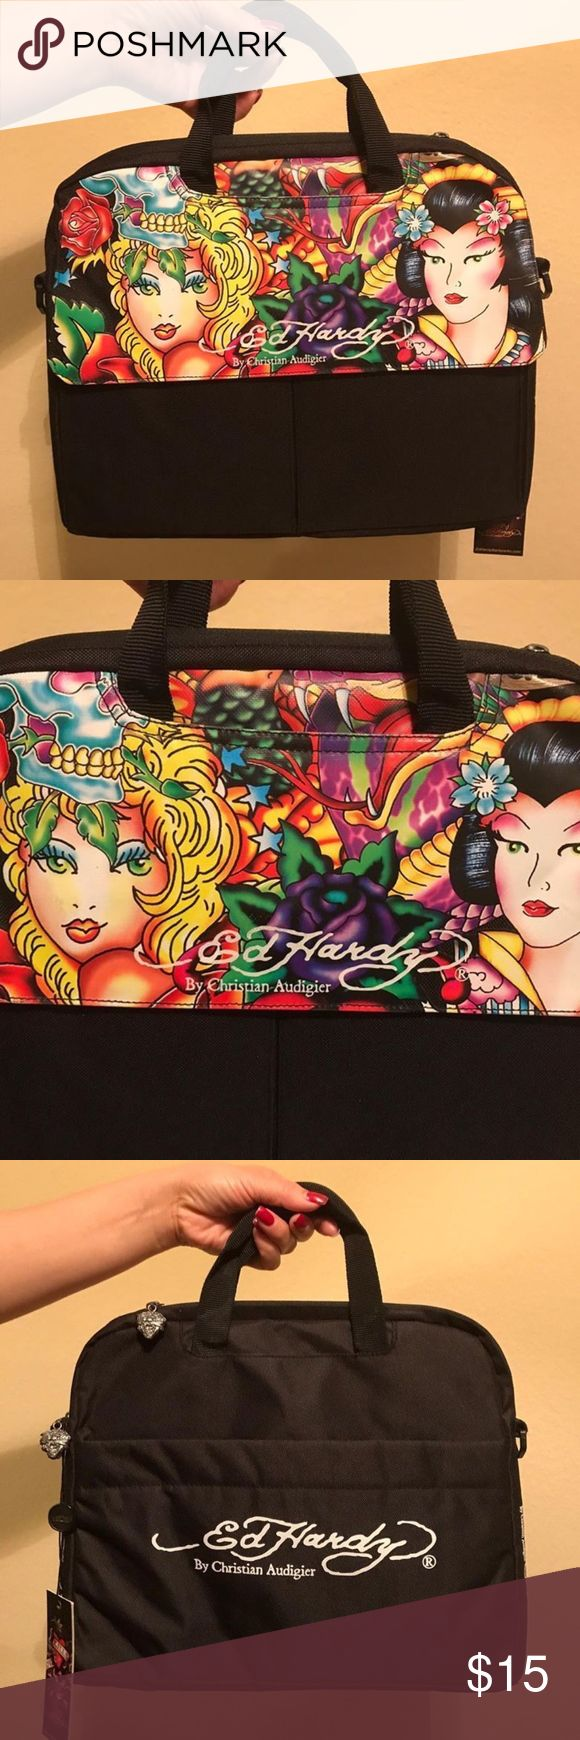 New Ed Hardy by Christian Audigier Laptop Bag Brand new Ed Hardy by Christian Audigier Laptop Bag New with tags Ed Hardy by Christian Audigier Bags Laptop Bags